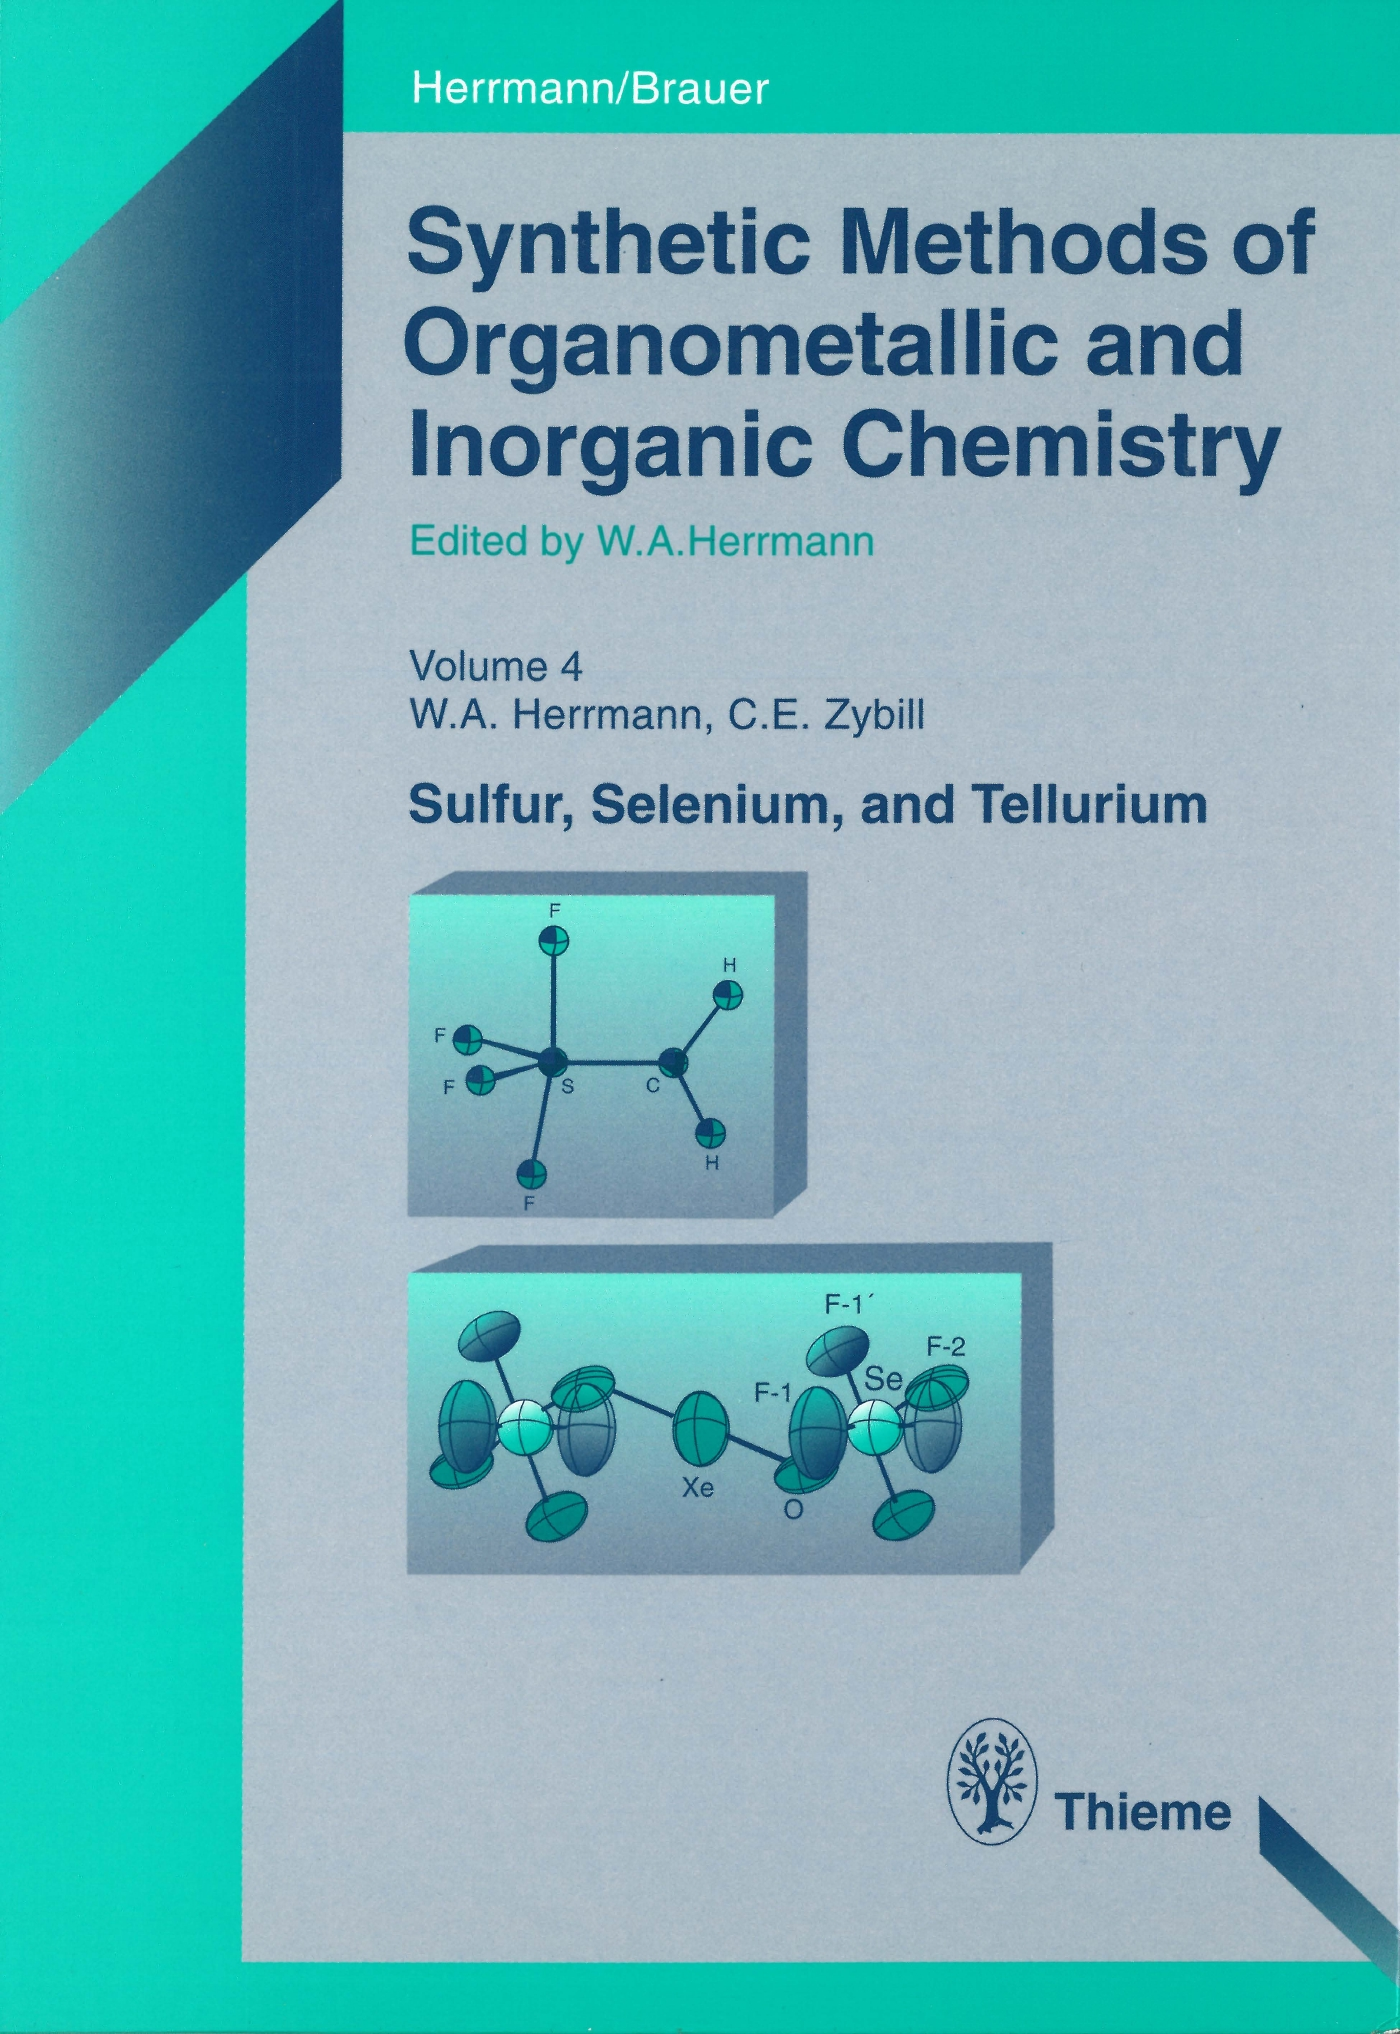 Synthetic Methods of Organometallic and Inorganic Chemistry, Volume 4, 1997